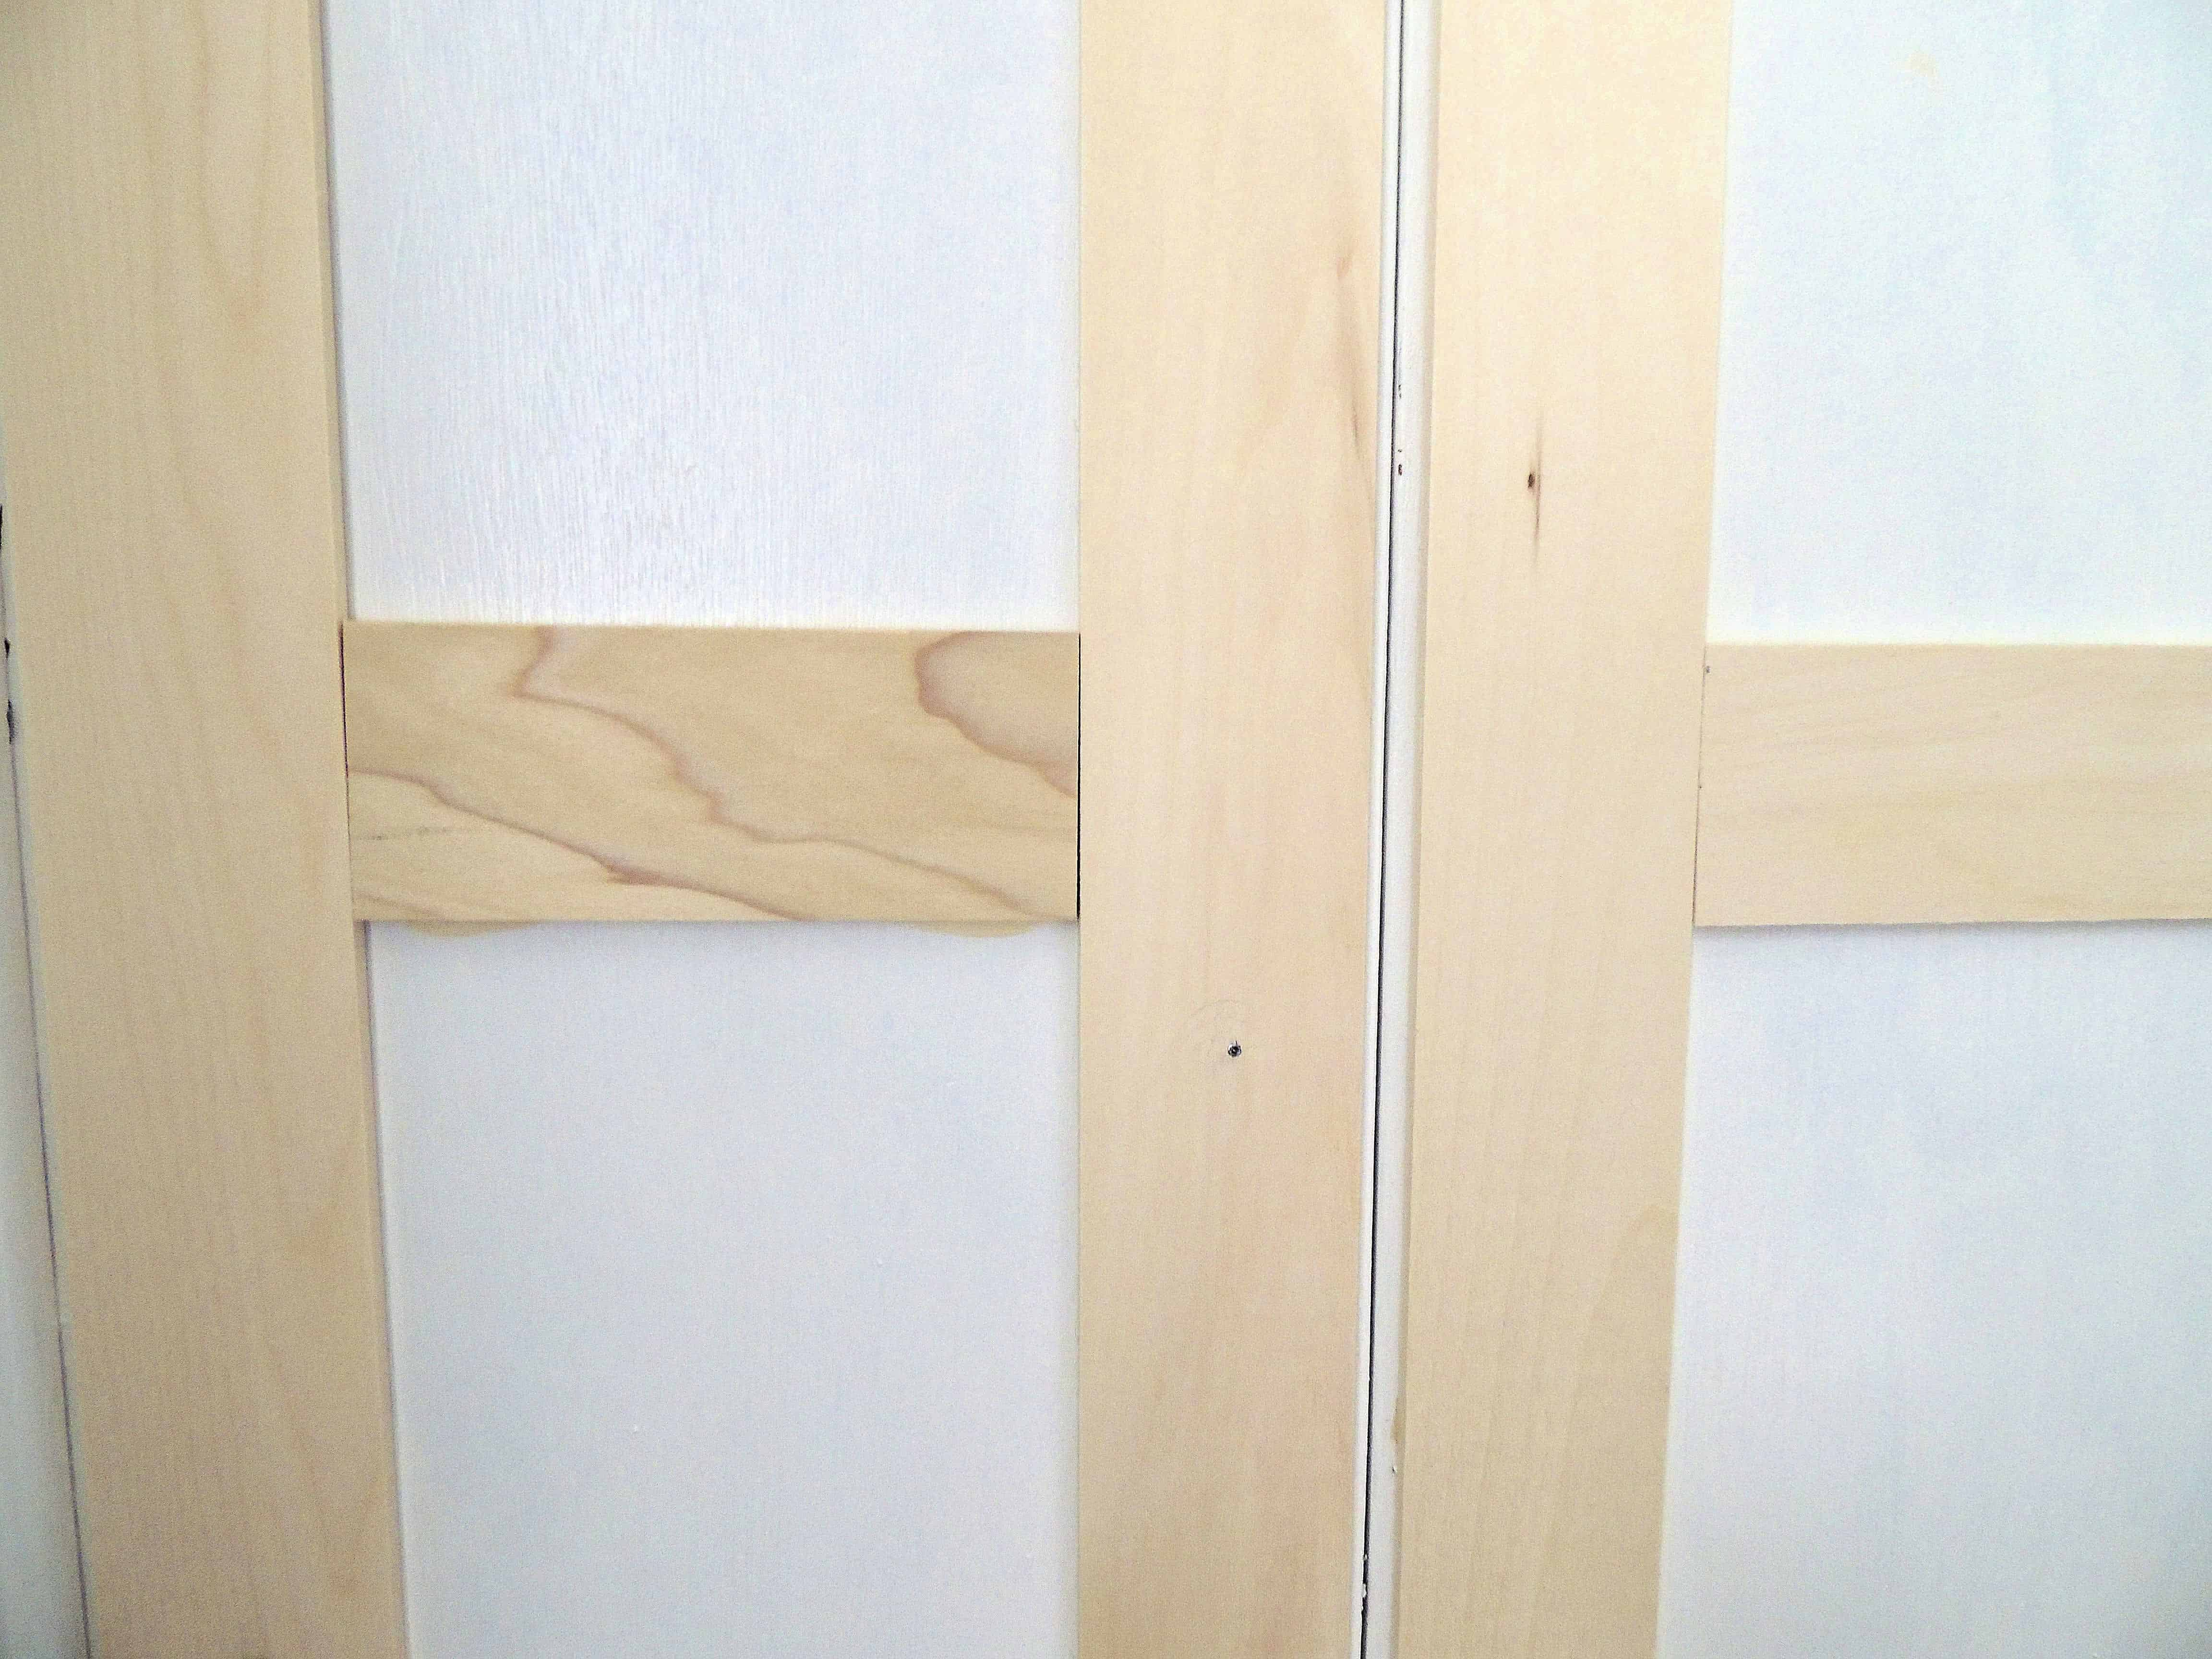 A close-up of the horizontal trim  meeting the vertical sides